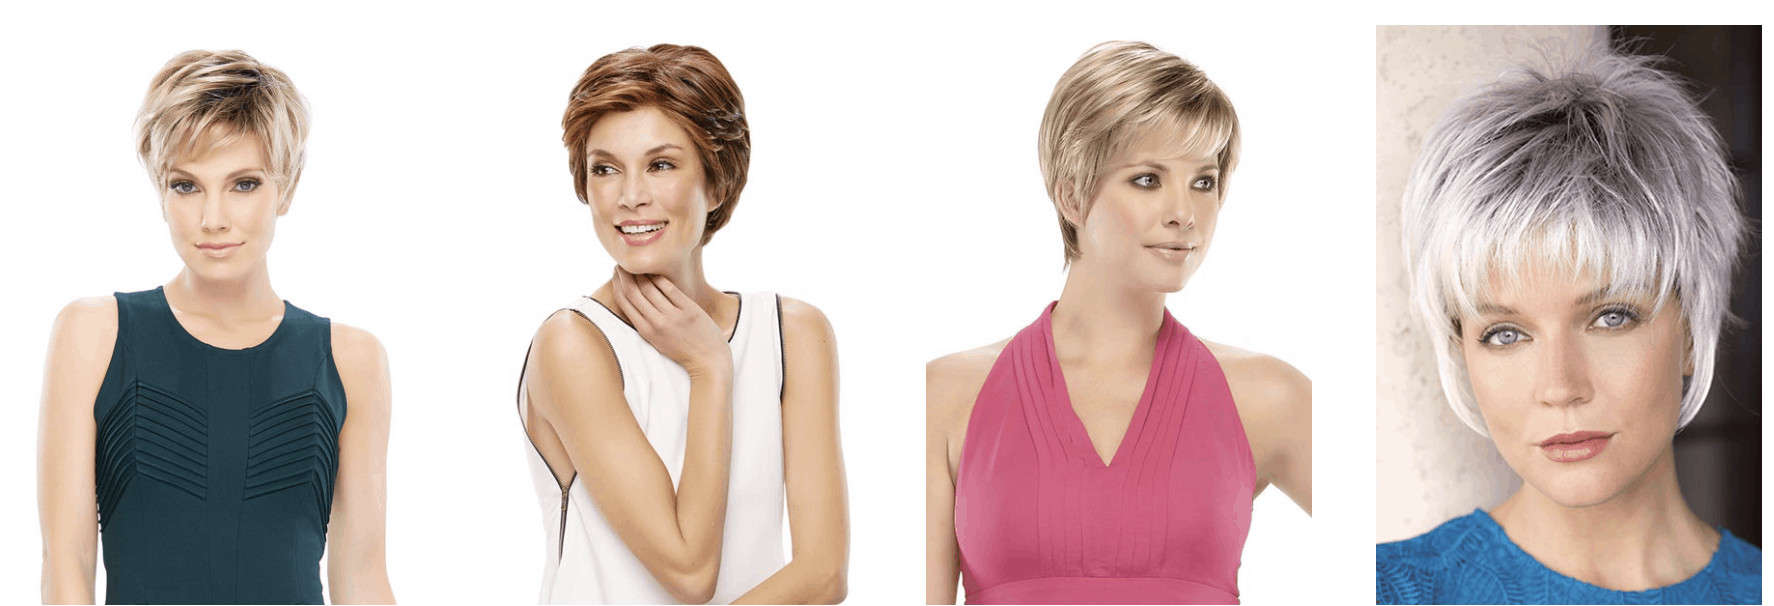 Pixie Hairstyle Wig Examples